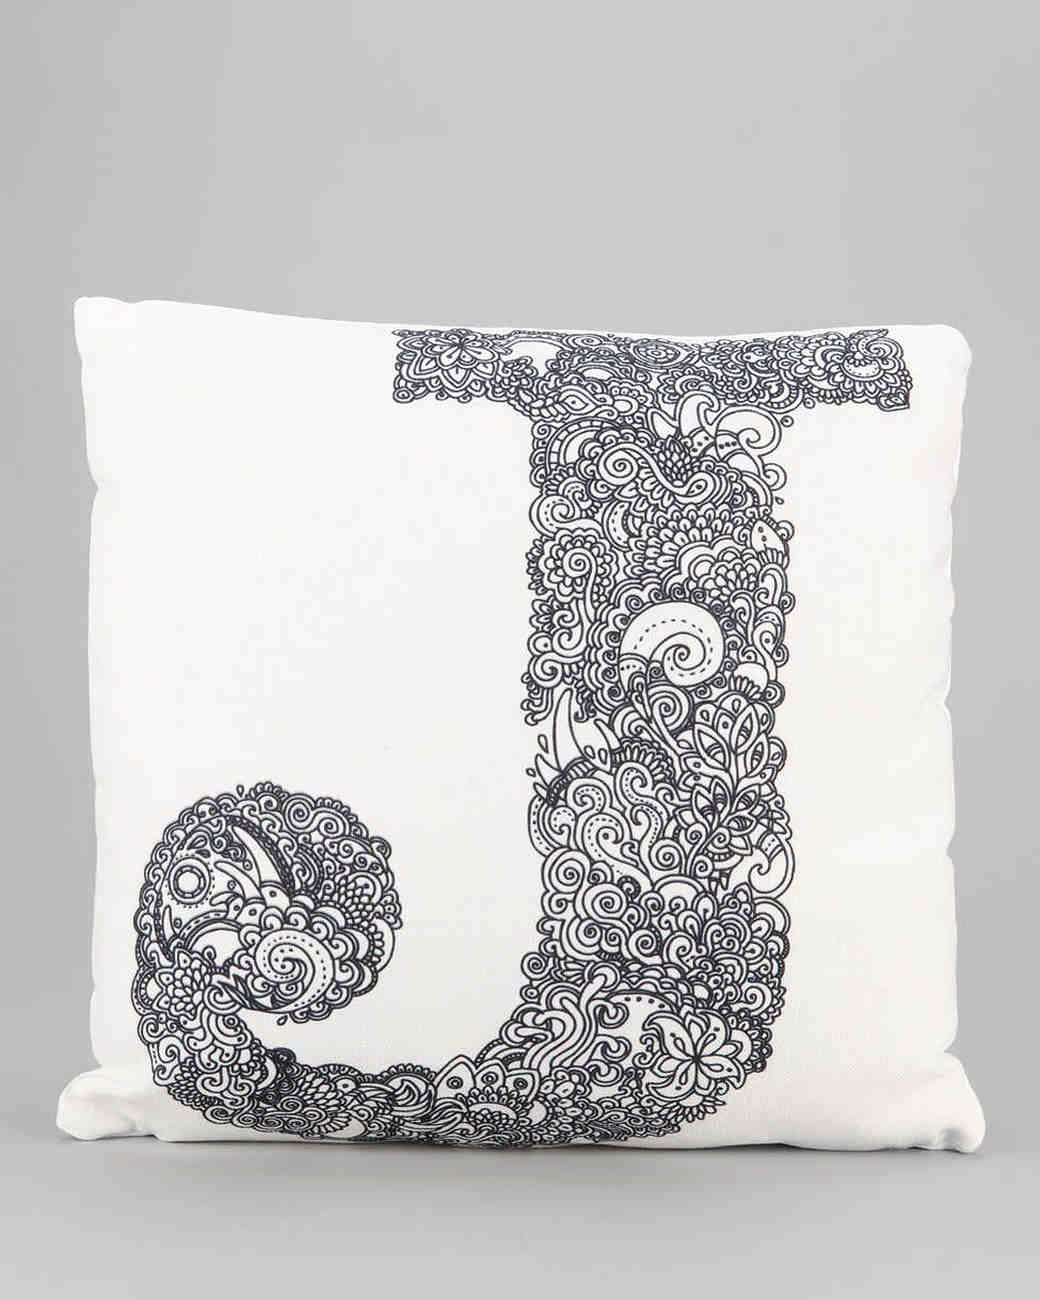 engagement-gifts-urban-outfitters-letter-pillow-0316.jpg